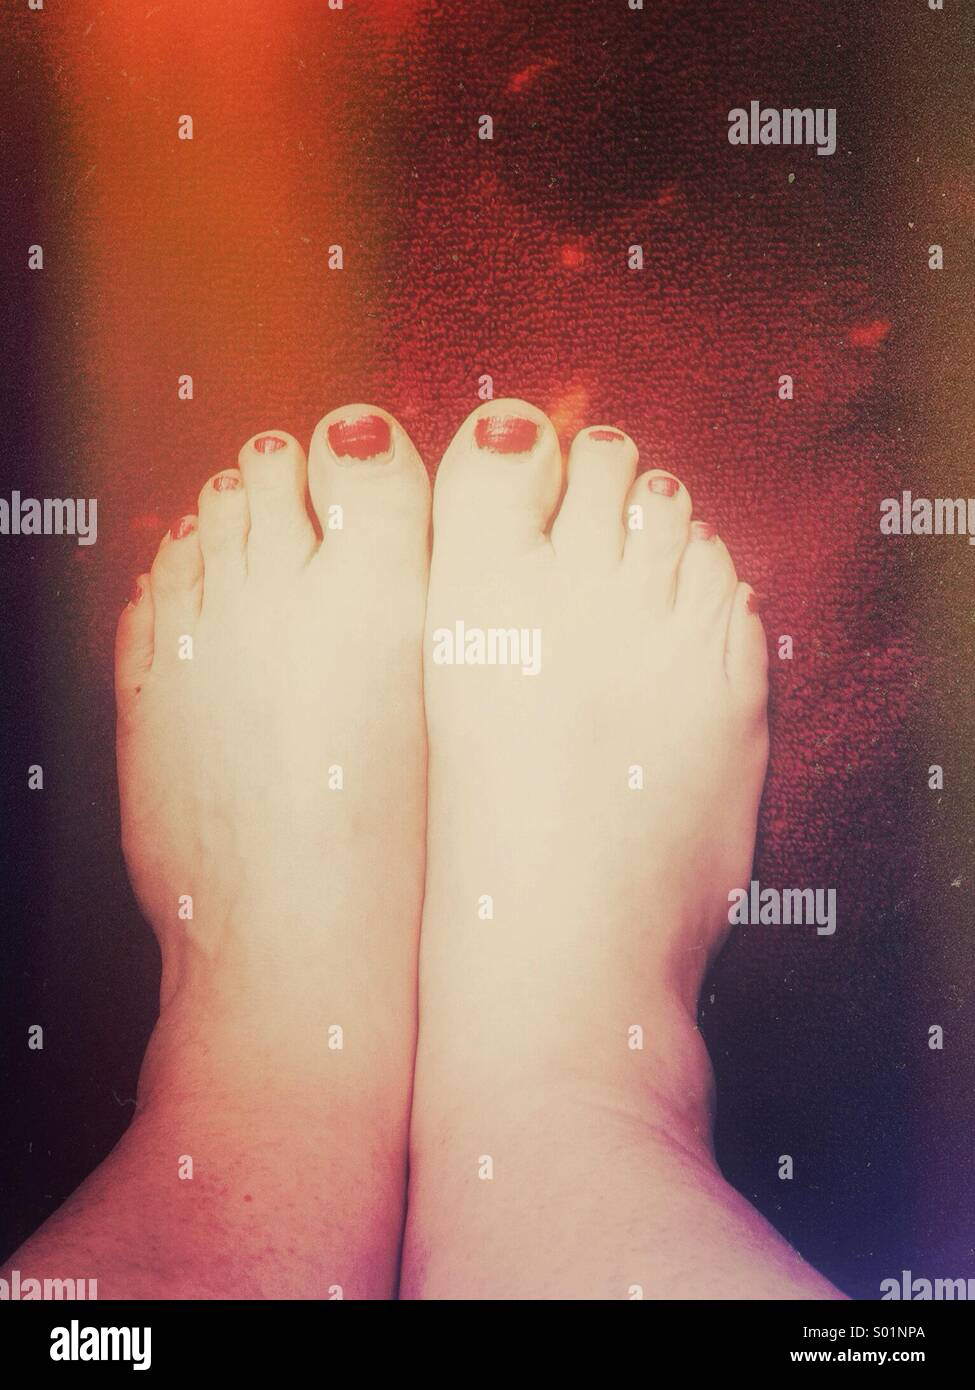 Chipped red nail polish and bare wide feet on red towel. - Stock Image